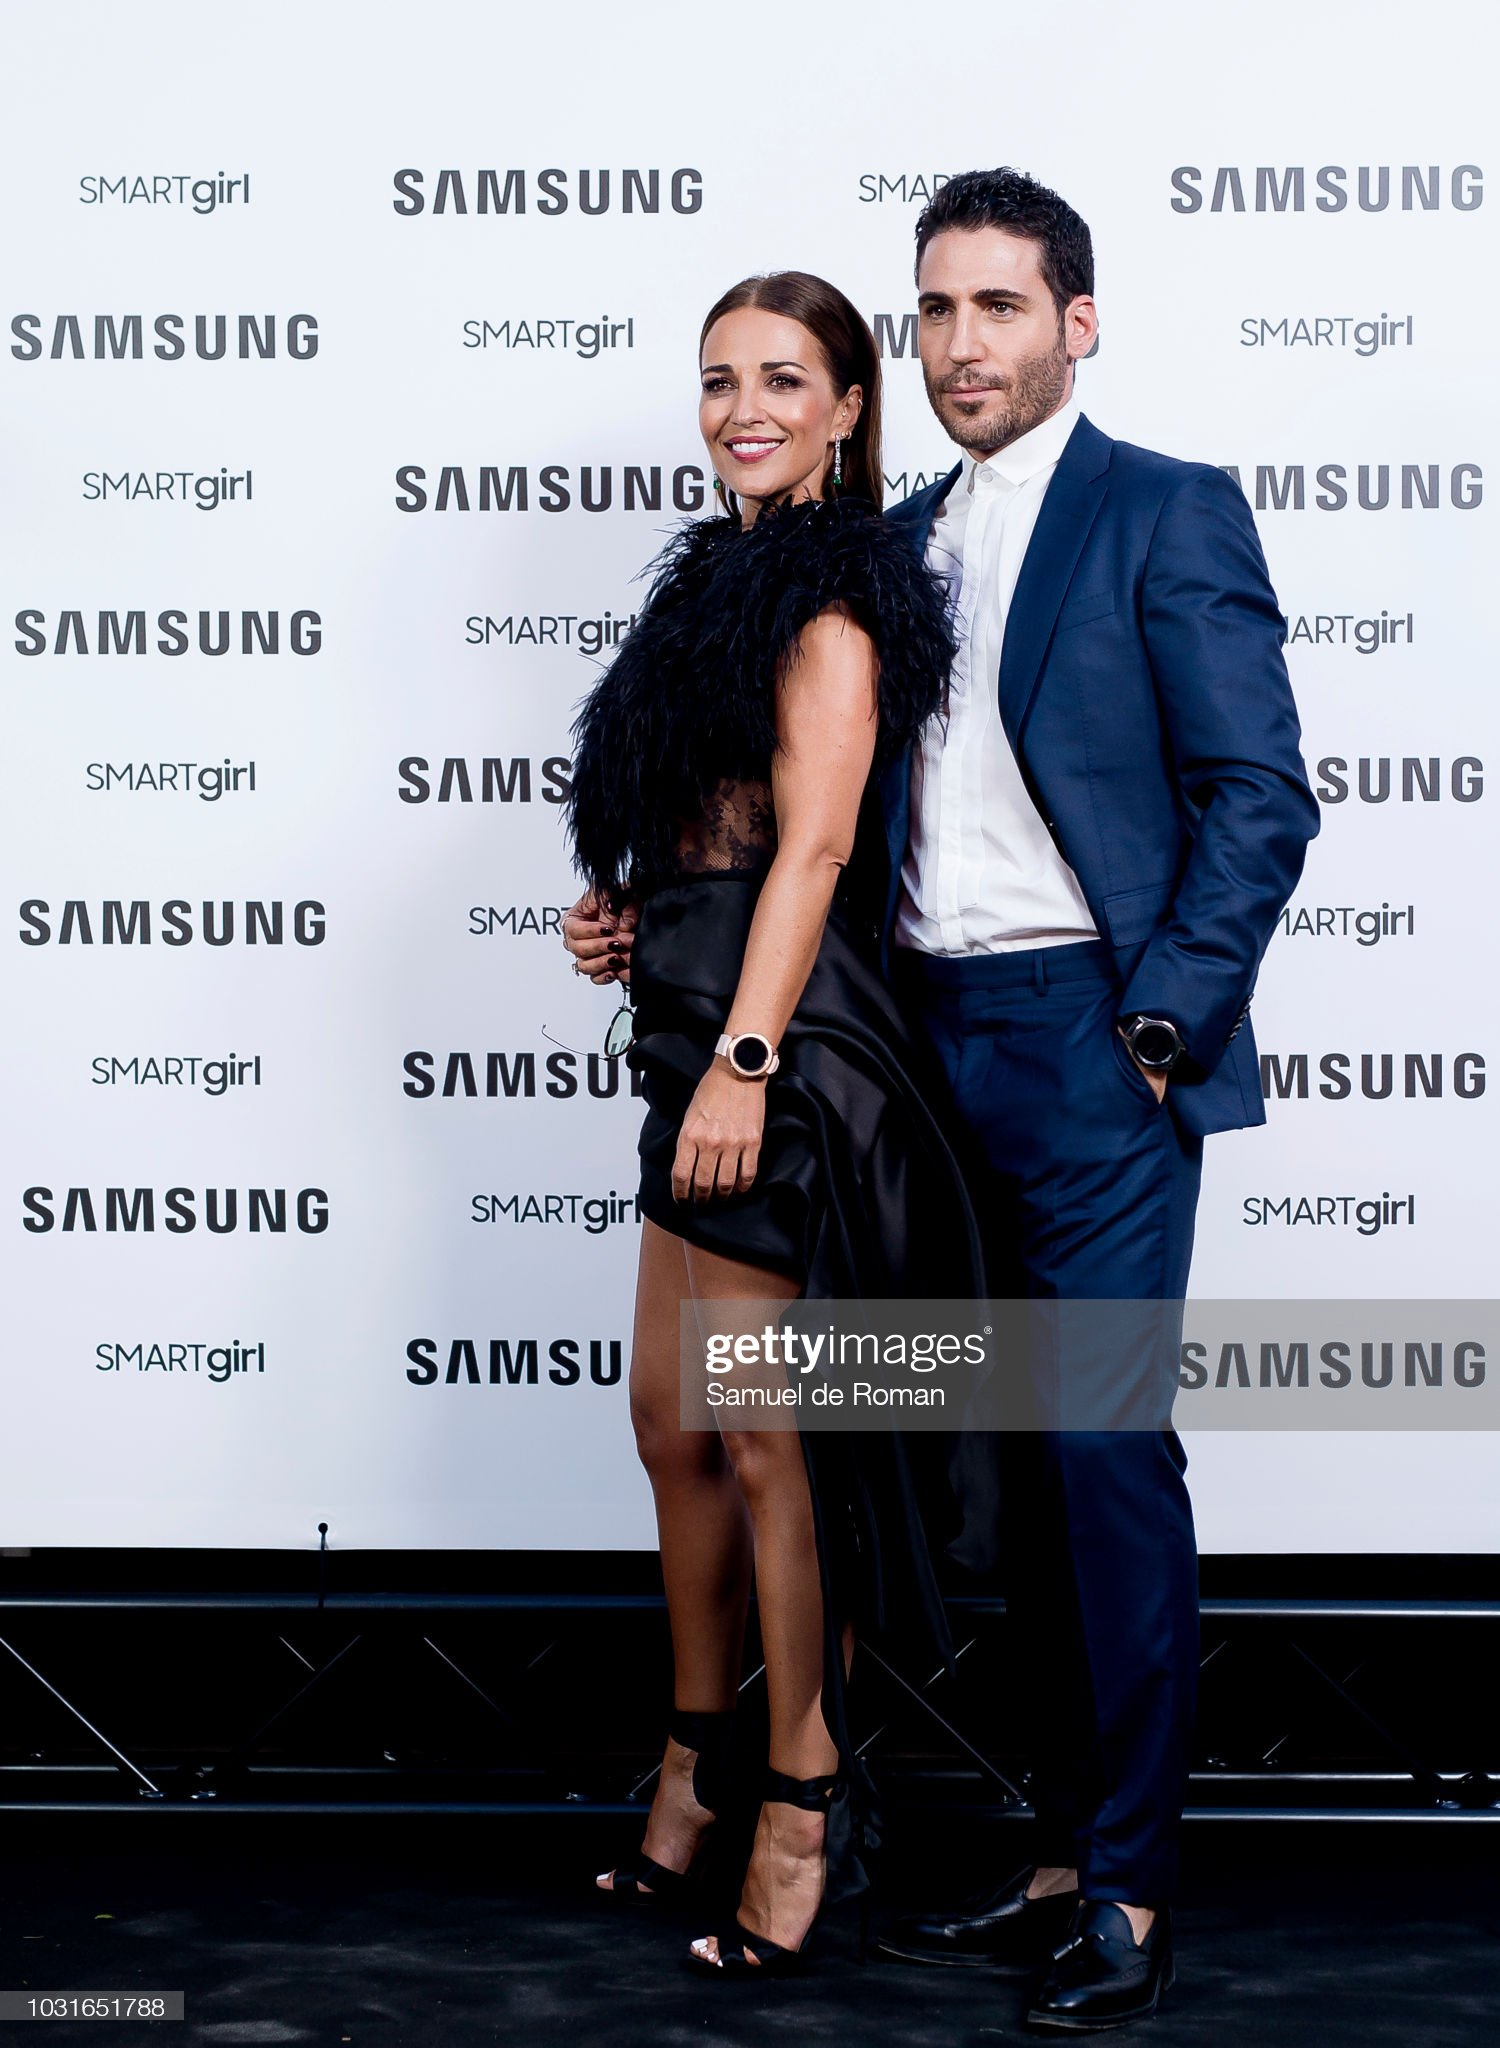 ¿Cuánto mide Miguel Ángel Silvestre? - Altura - Real height Paula-echevarria-and-miguel-angel-silvestre-present-new-samsung-on-picture-id1031651788?s=2048x2048